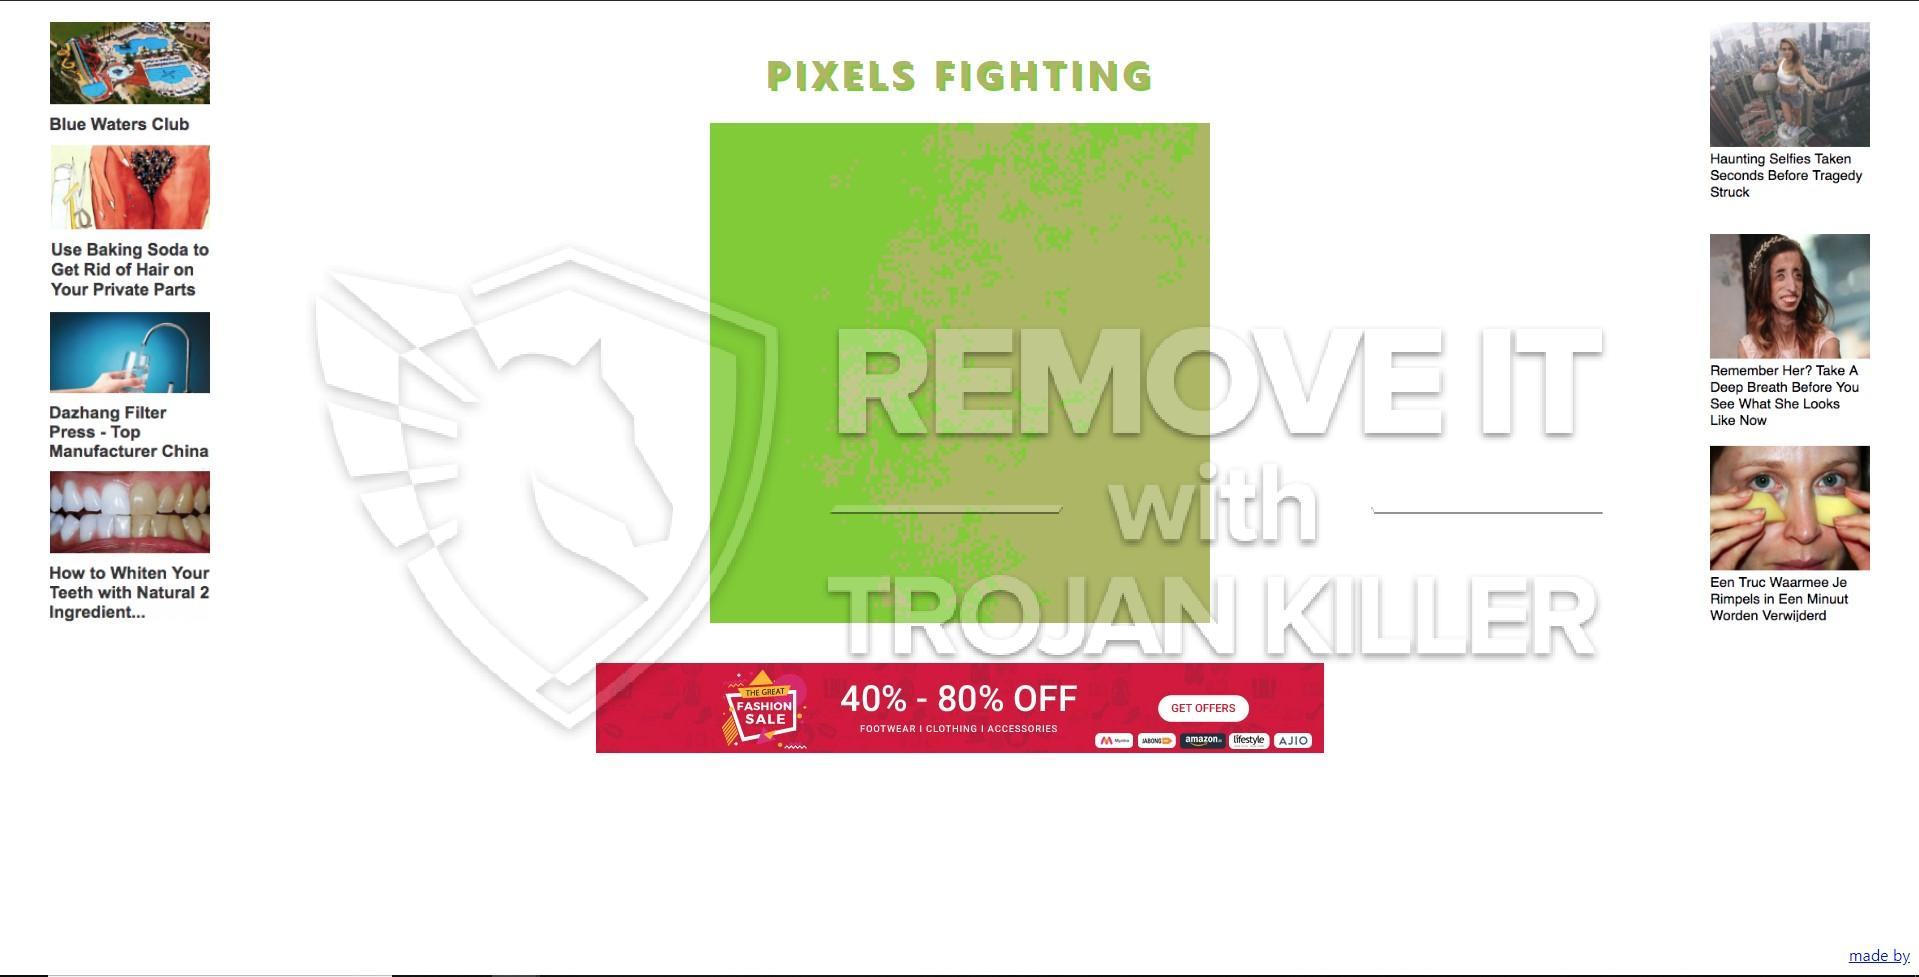 remove Pixelsfighting.co